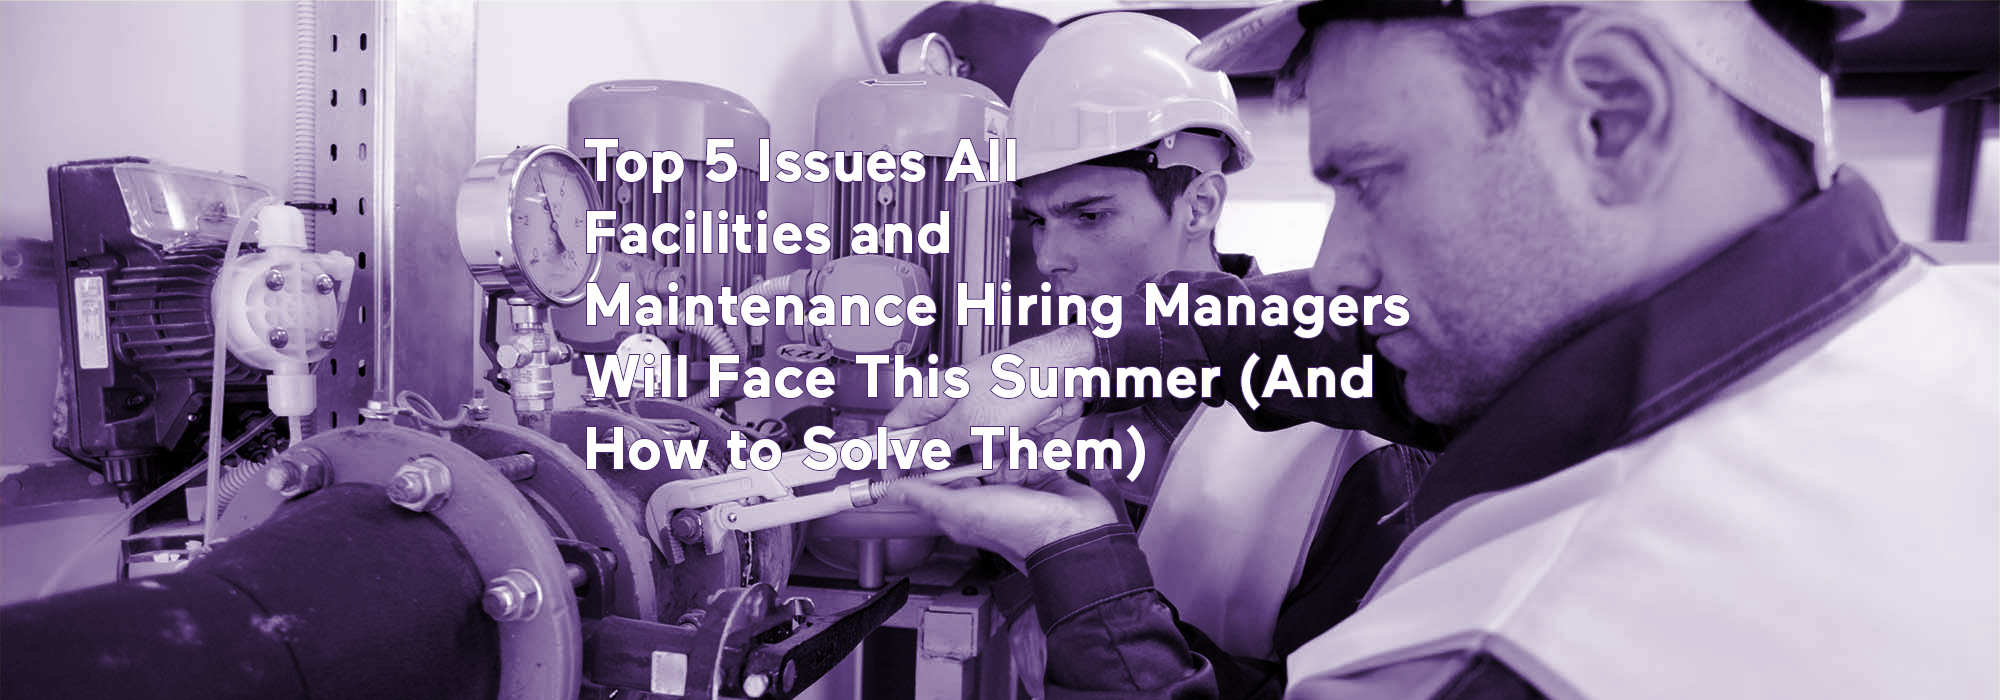 Top 5 Issues All Facilities and Maintenance Hiring Managers Will Face This Summer (And How to Solve Them)